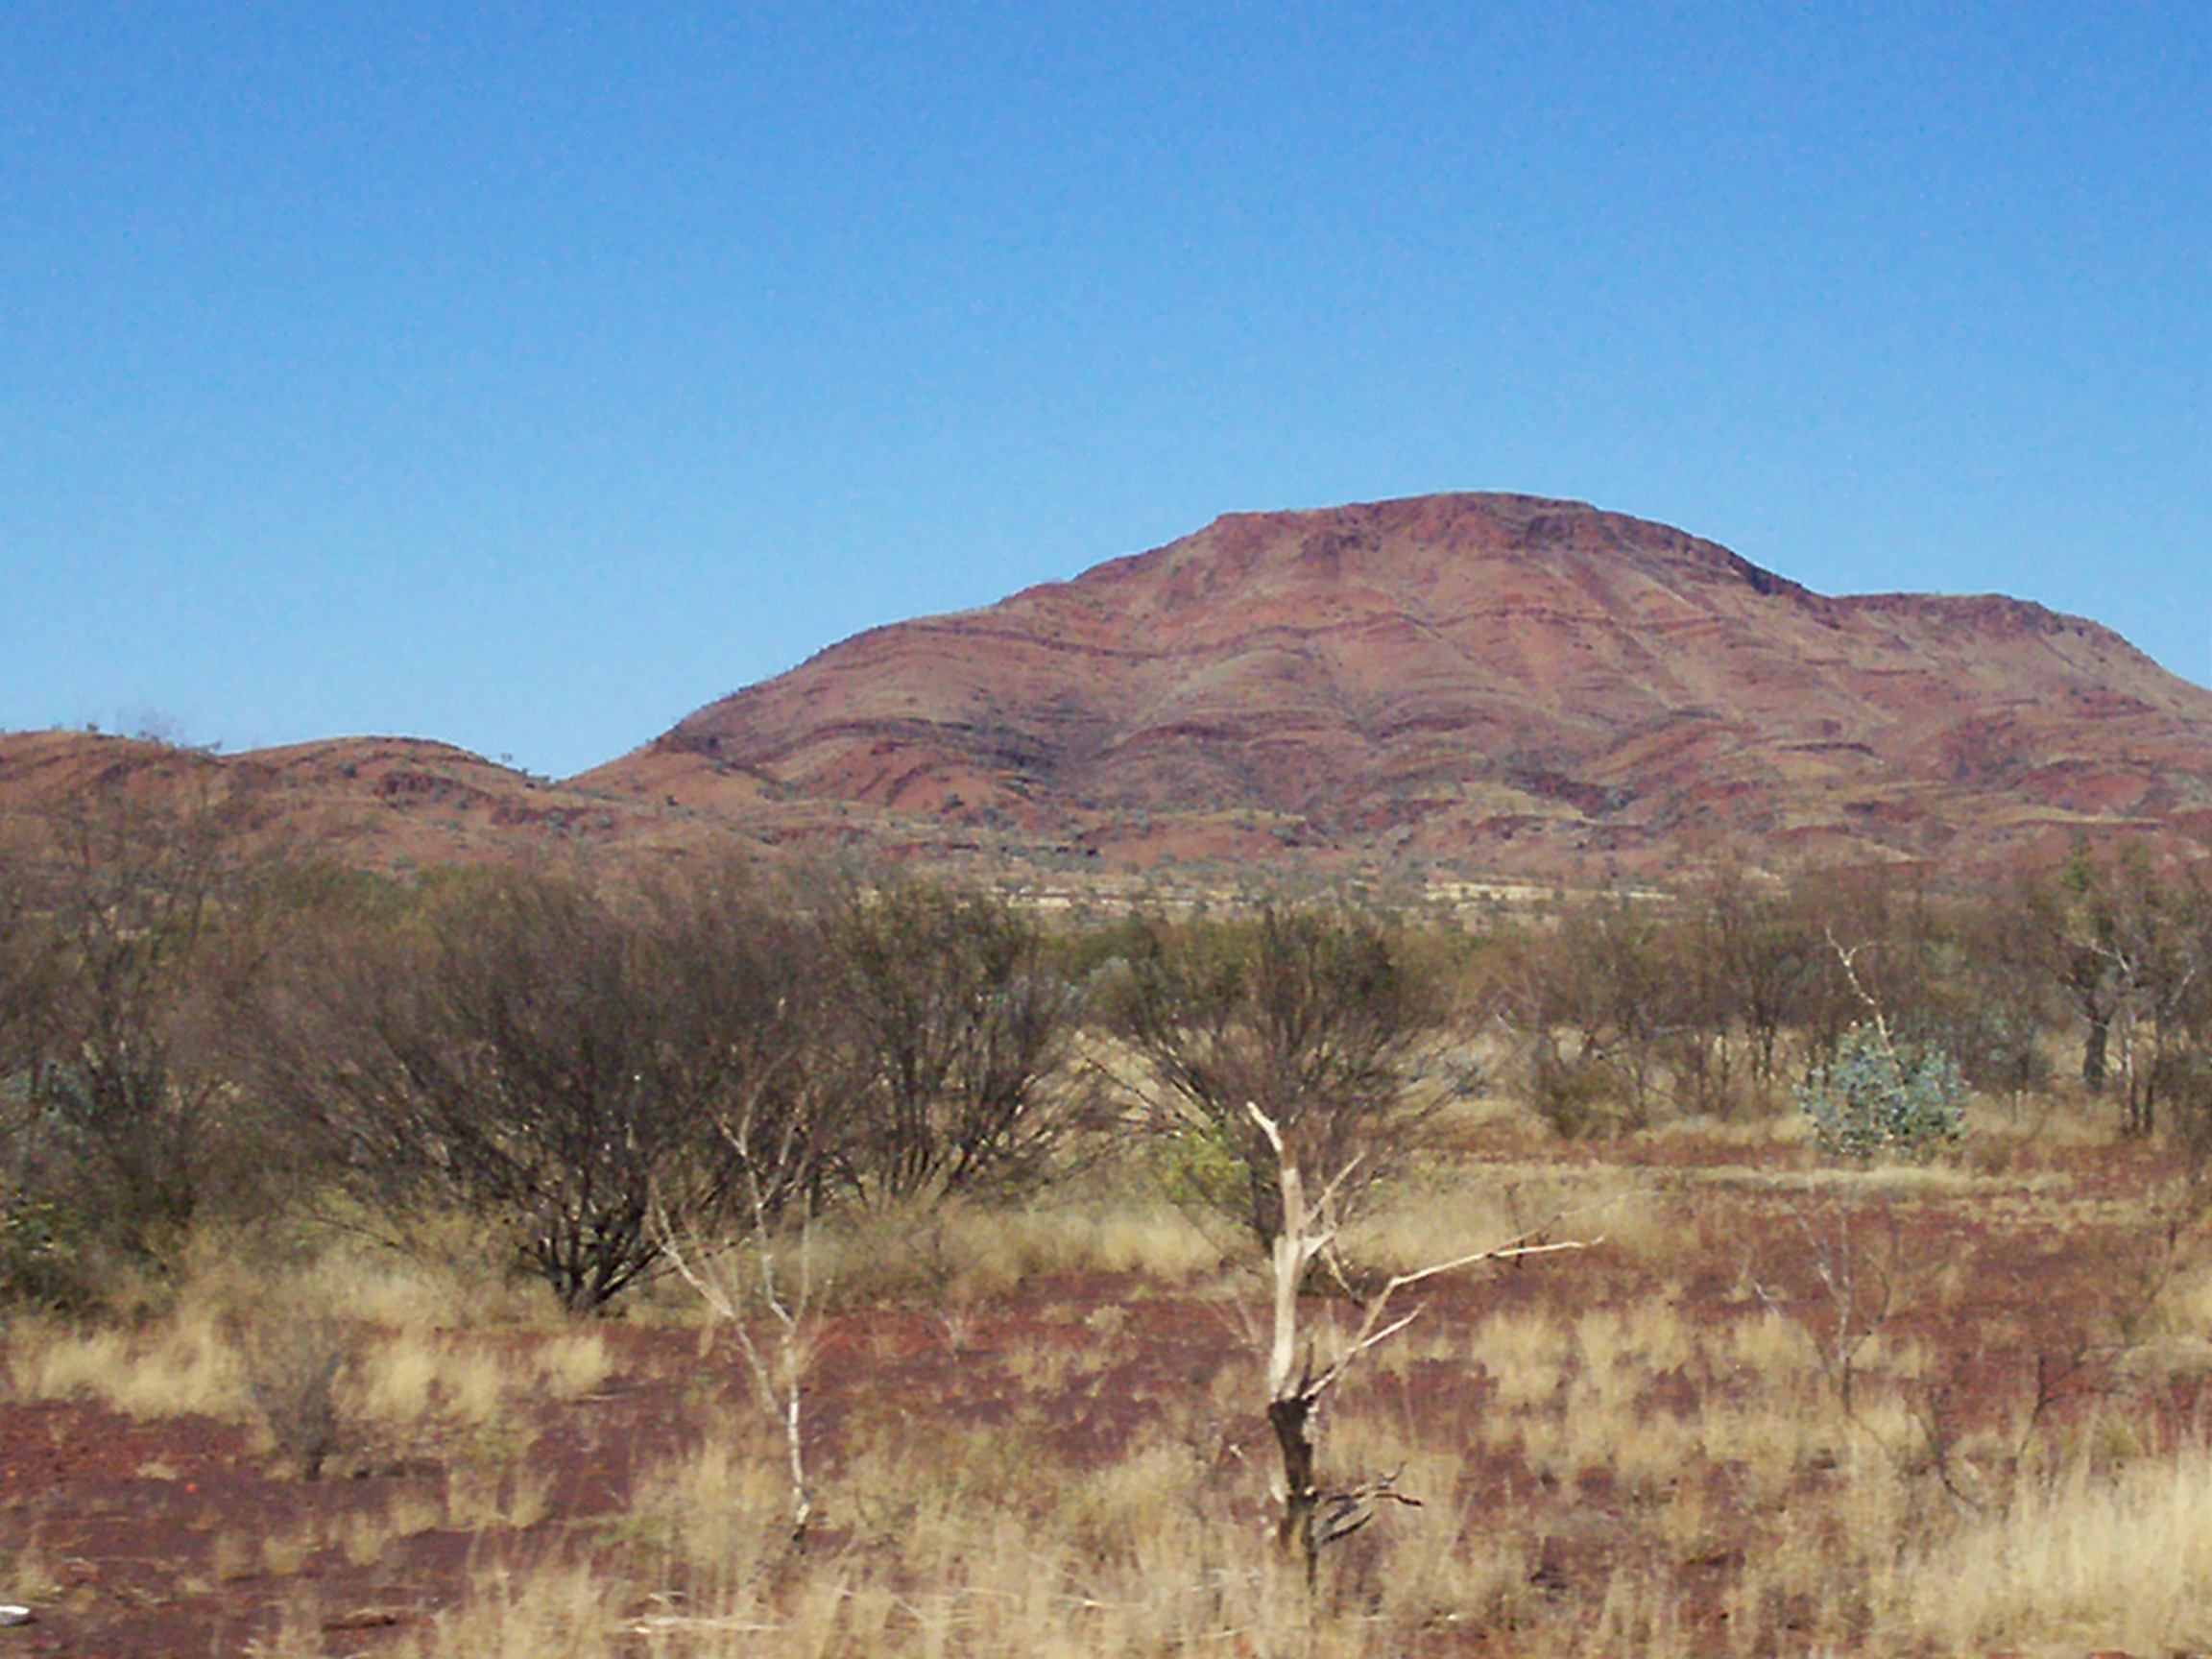 Beautiful Mulga Downs - part of the Pilbara landscape